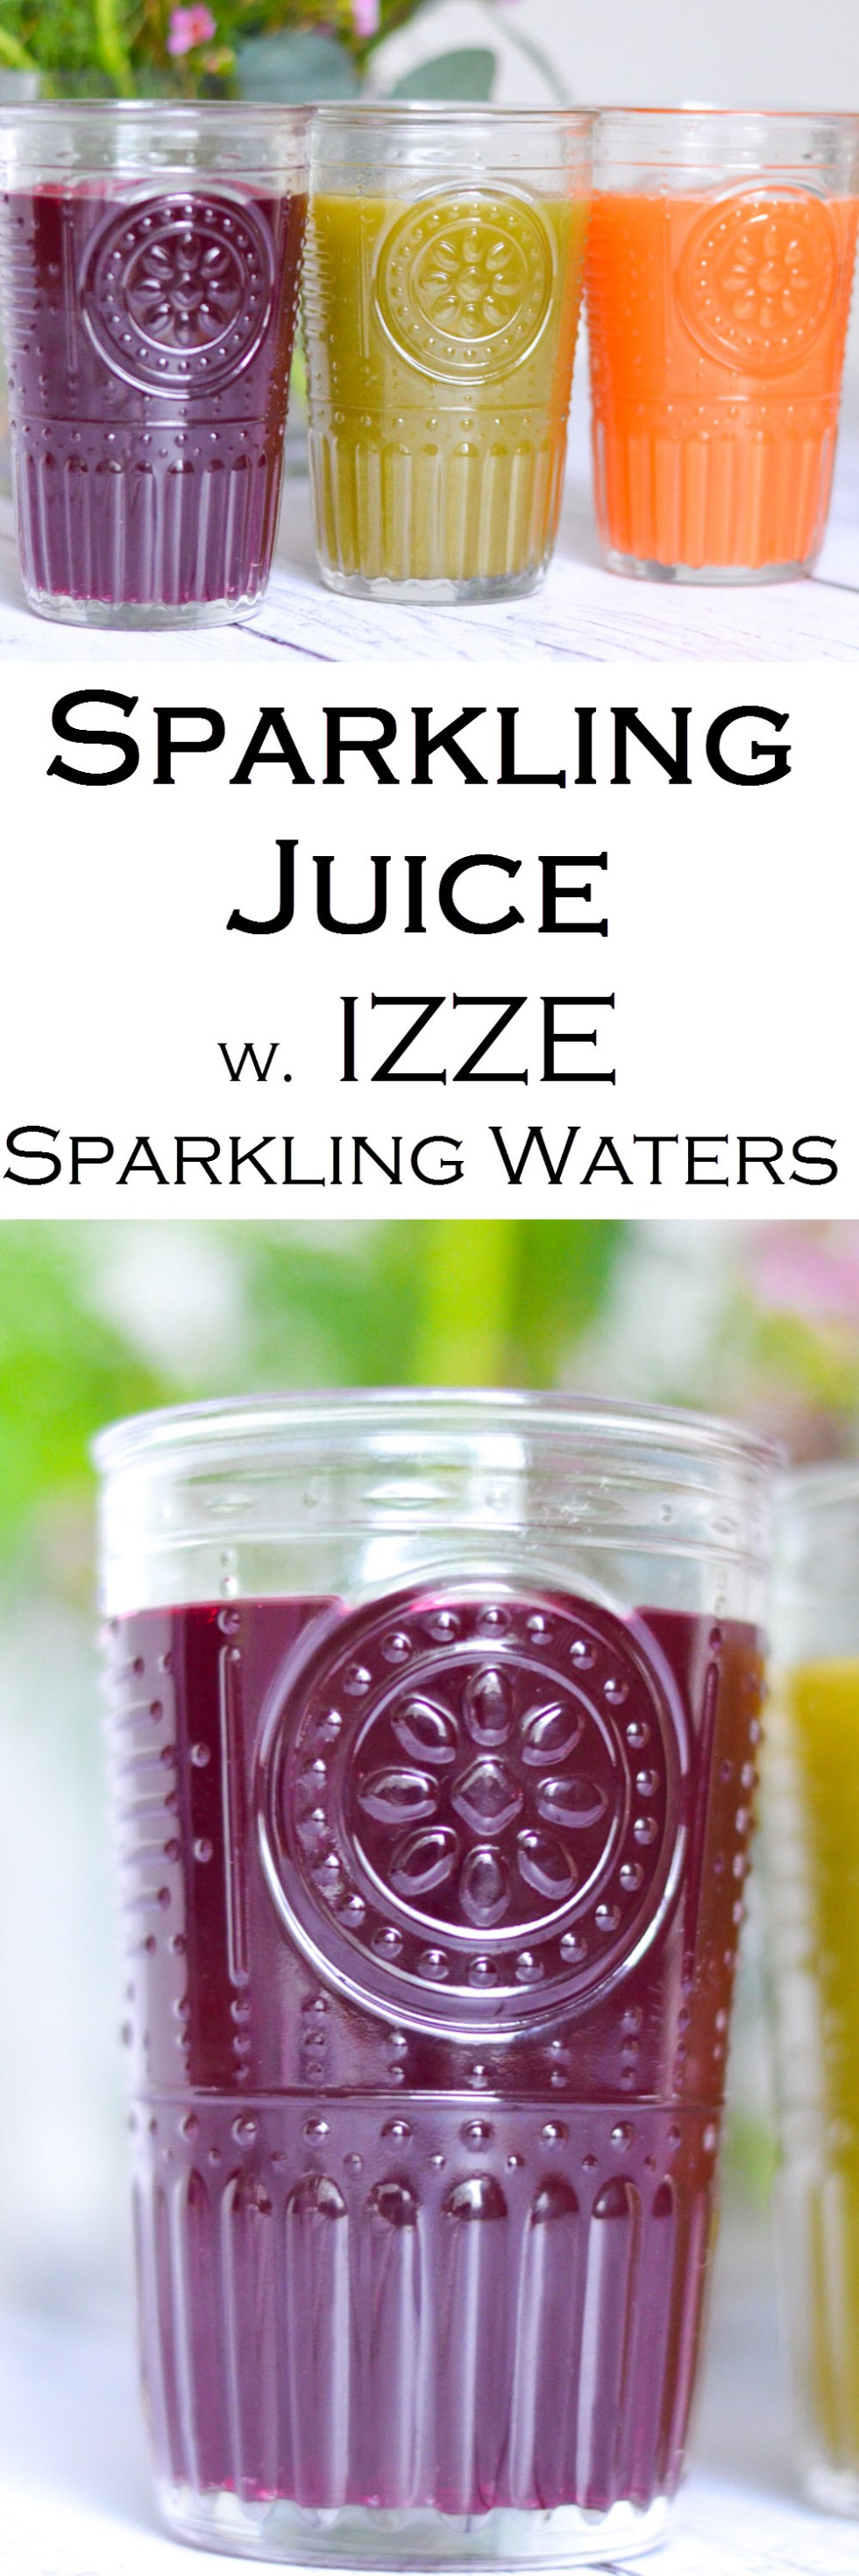 Sparkling Juice Recipe made with IZZE Sparkling Water Drinks